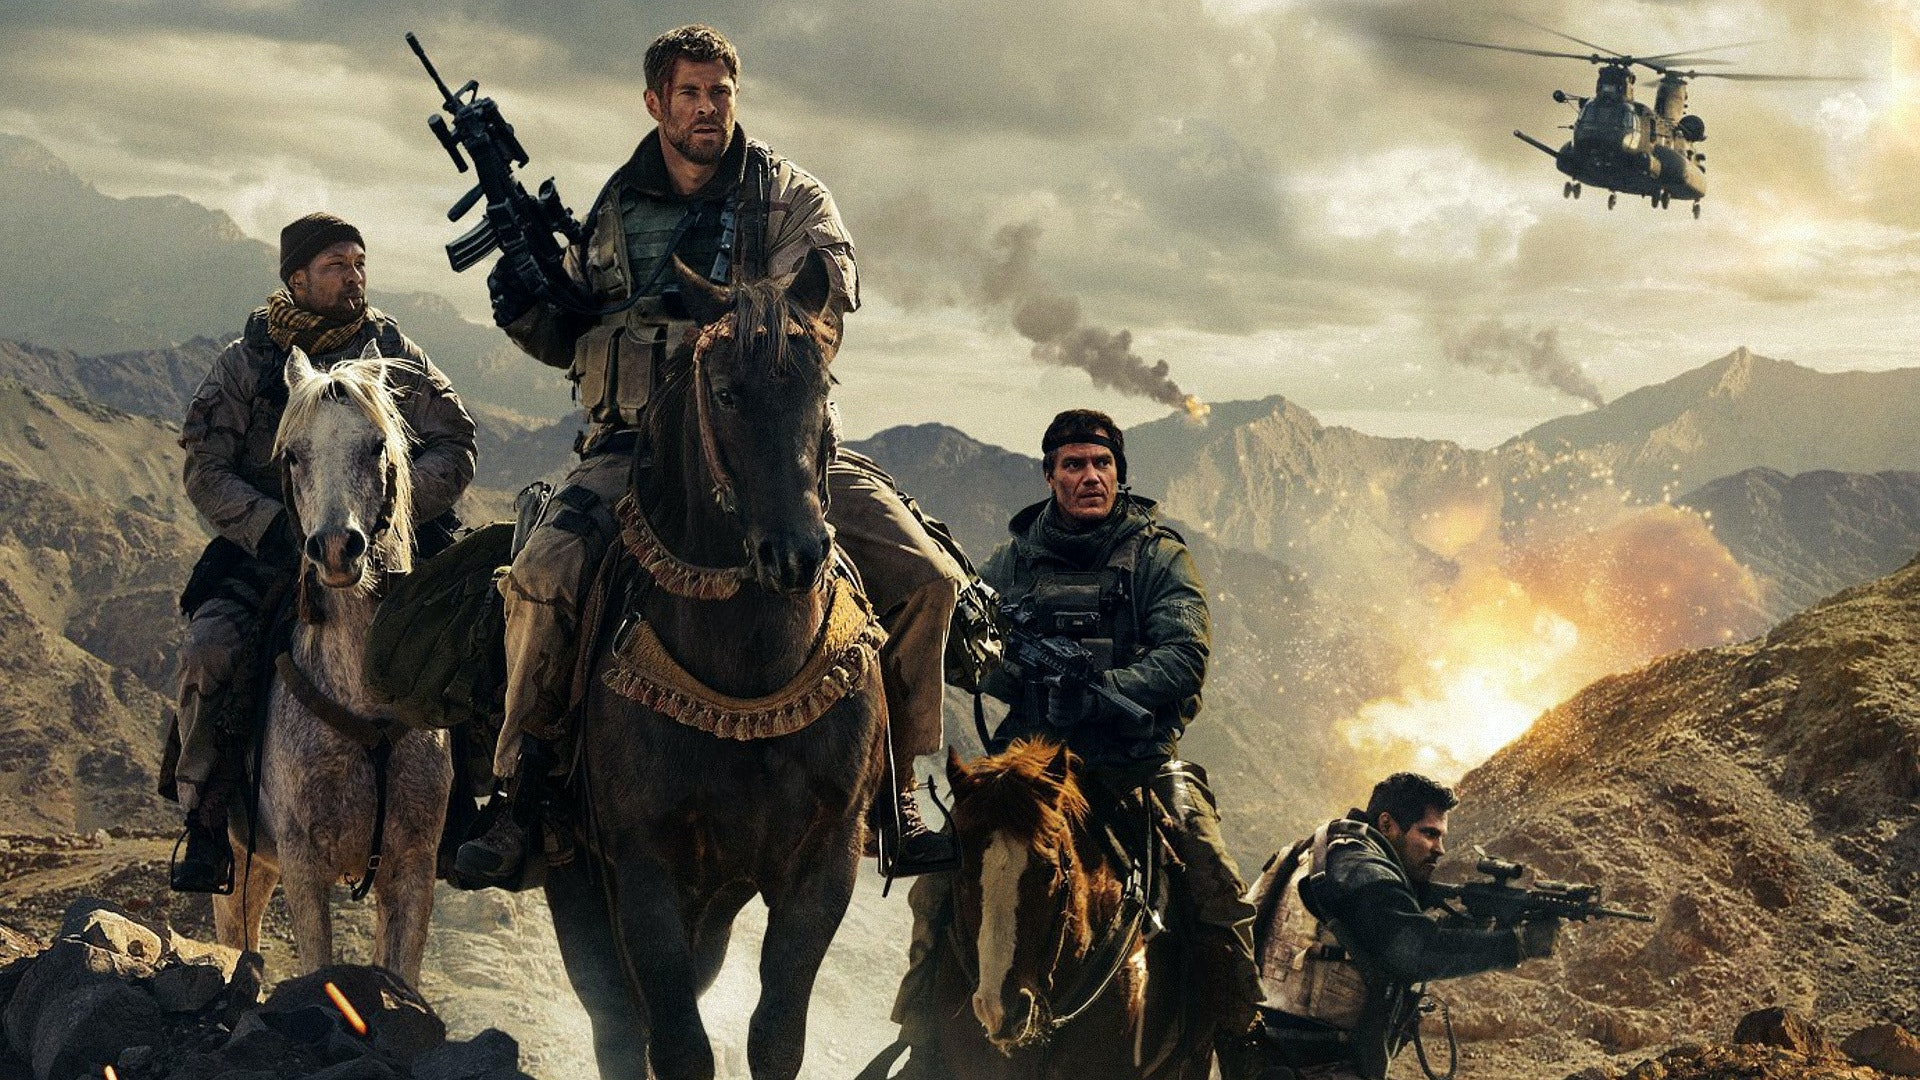 12 Strong Soundtrack